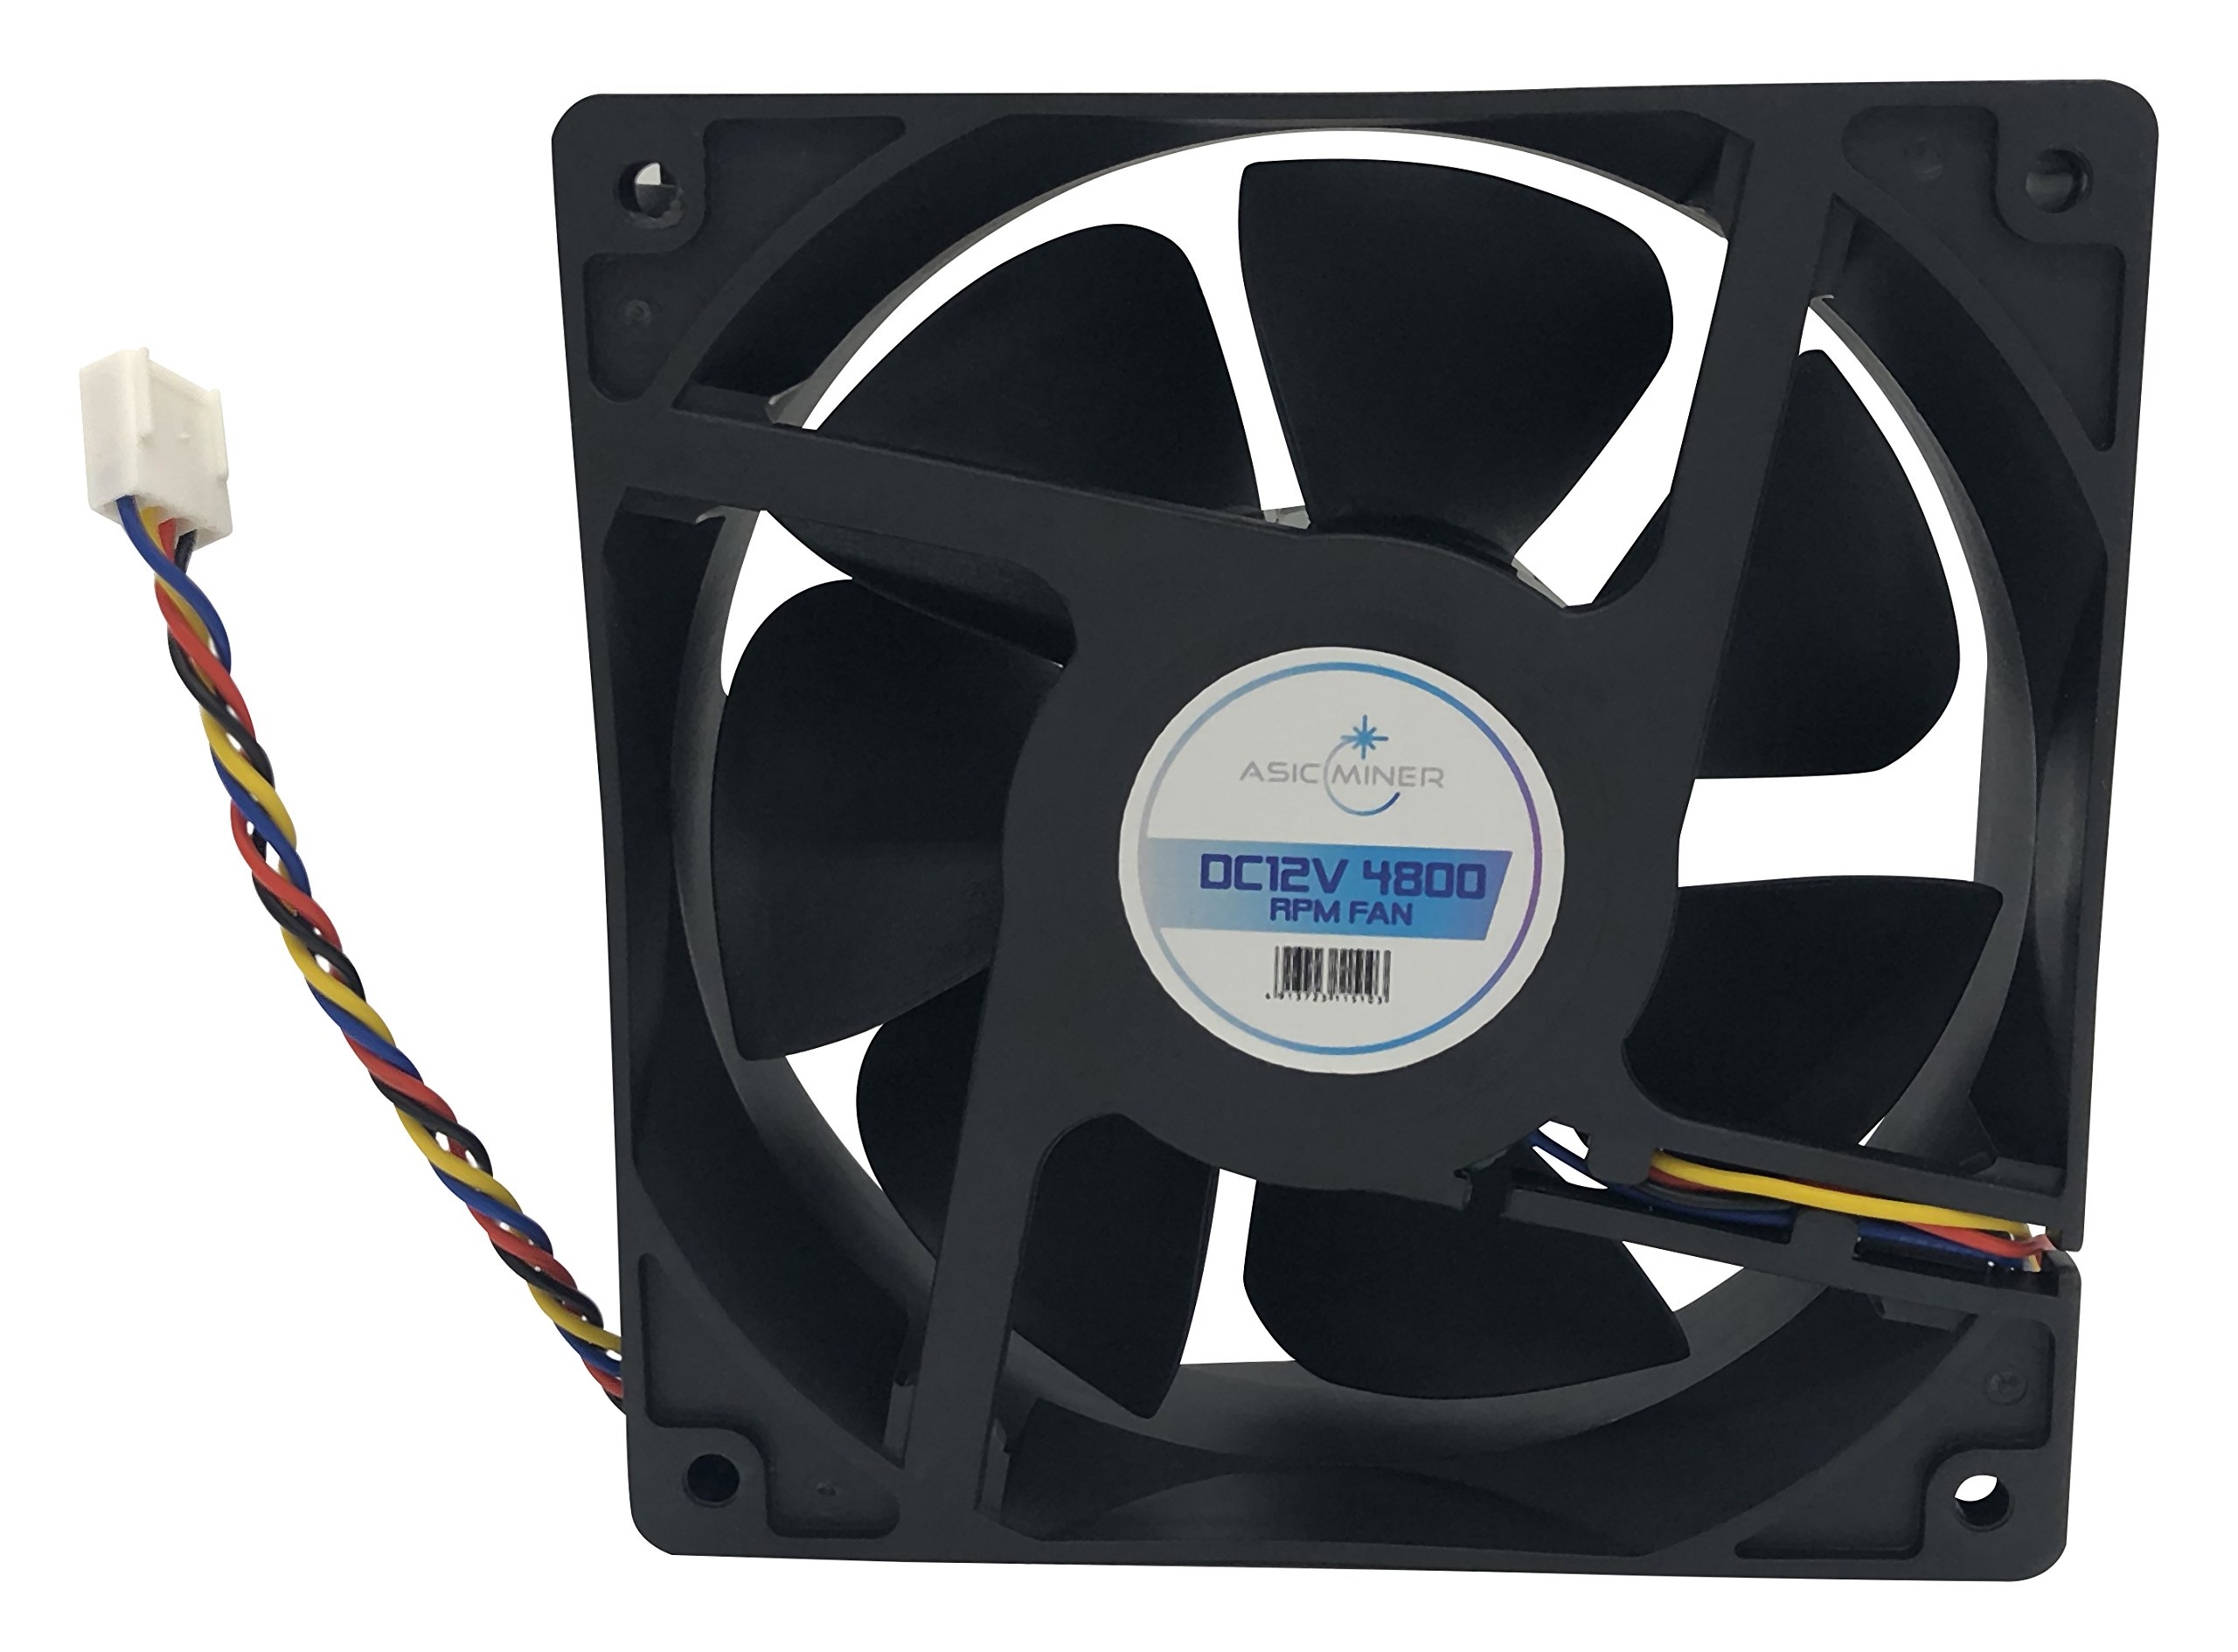 Asicminer Fan for Antminer S3, S5, S5+, S7, S9 D3, L3 by ASICMiner (Image #1)